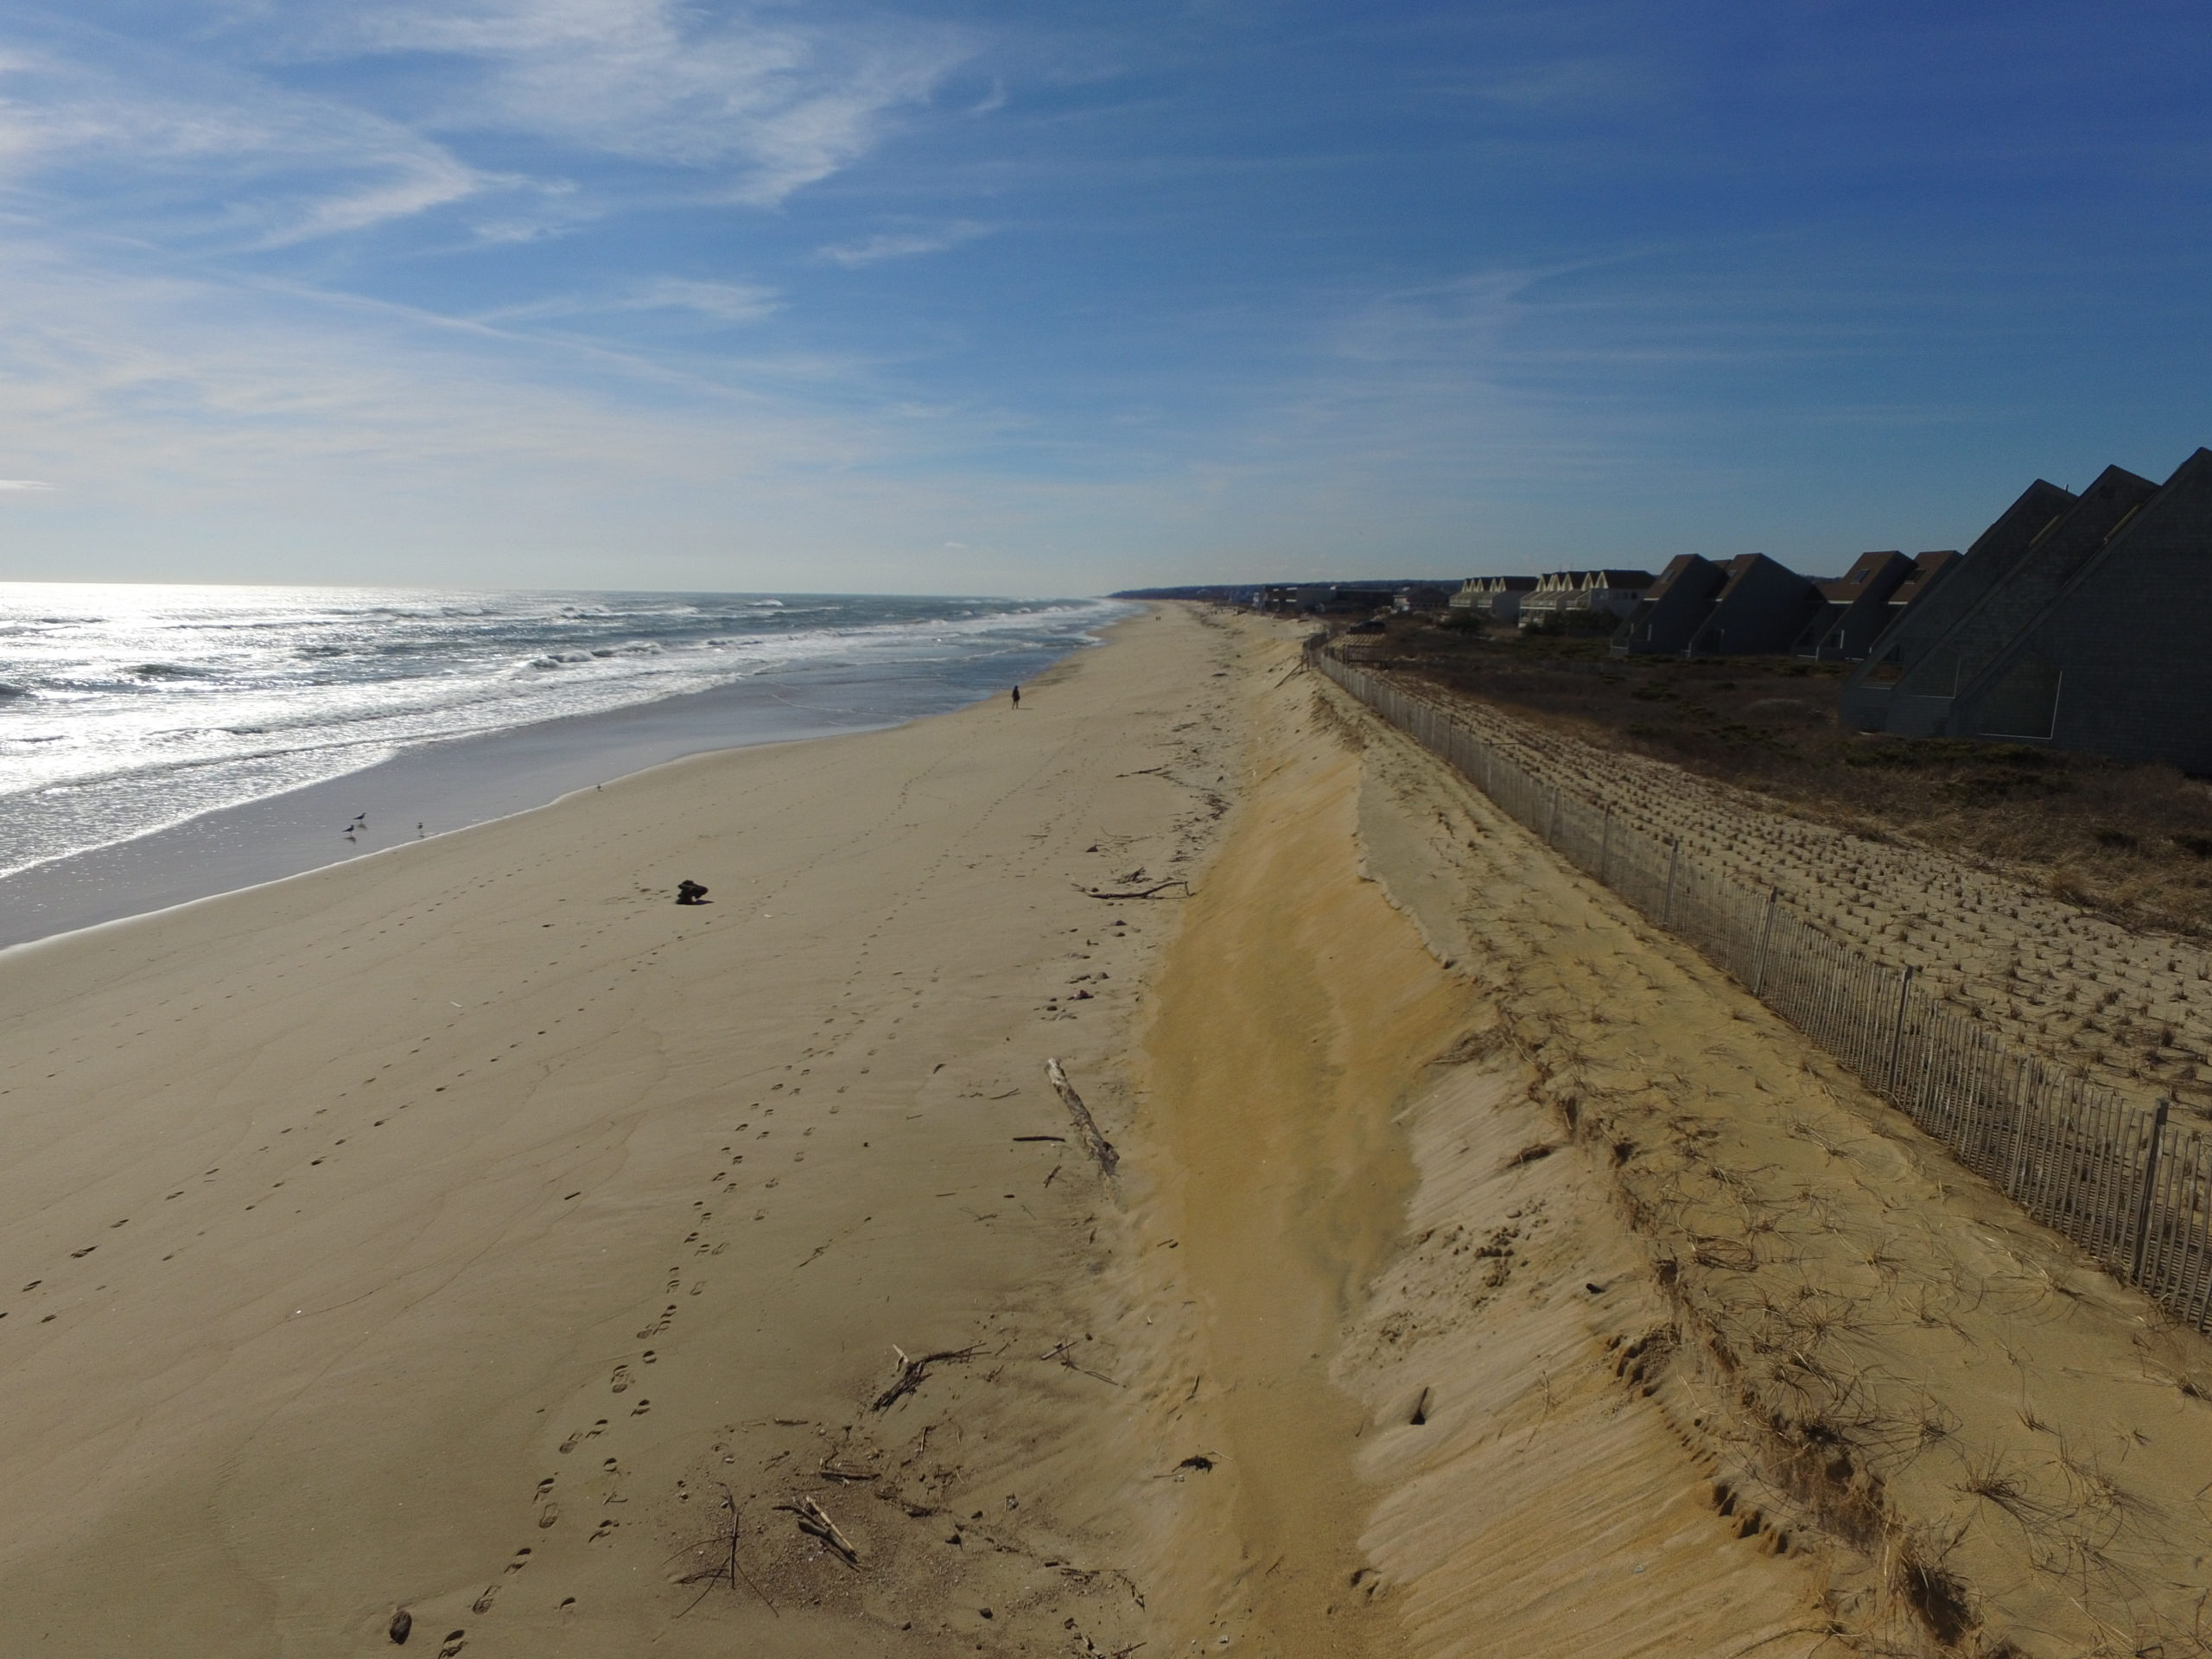 The FIMP plan includes a broad nourishment of the beaches of Montauk, which East Hampton Town is trying to bolster with additonal funding of its own.